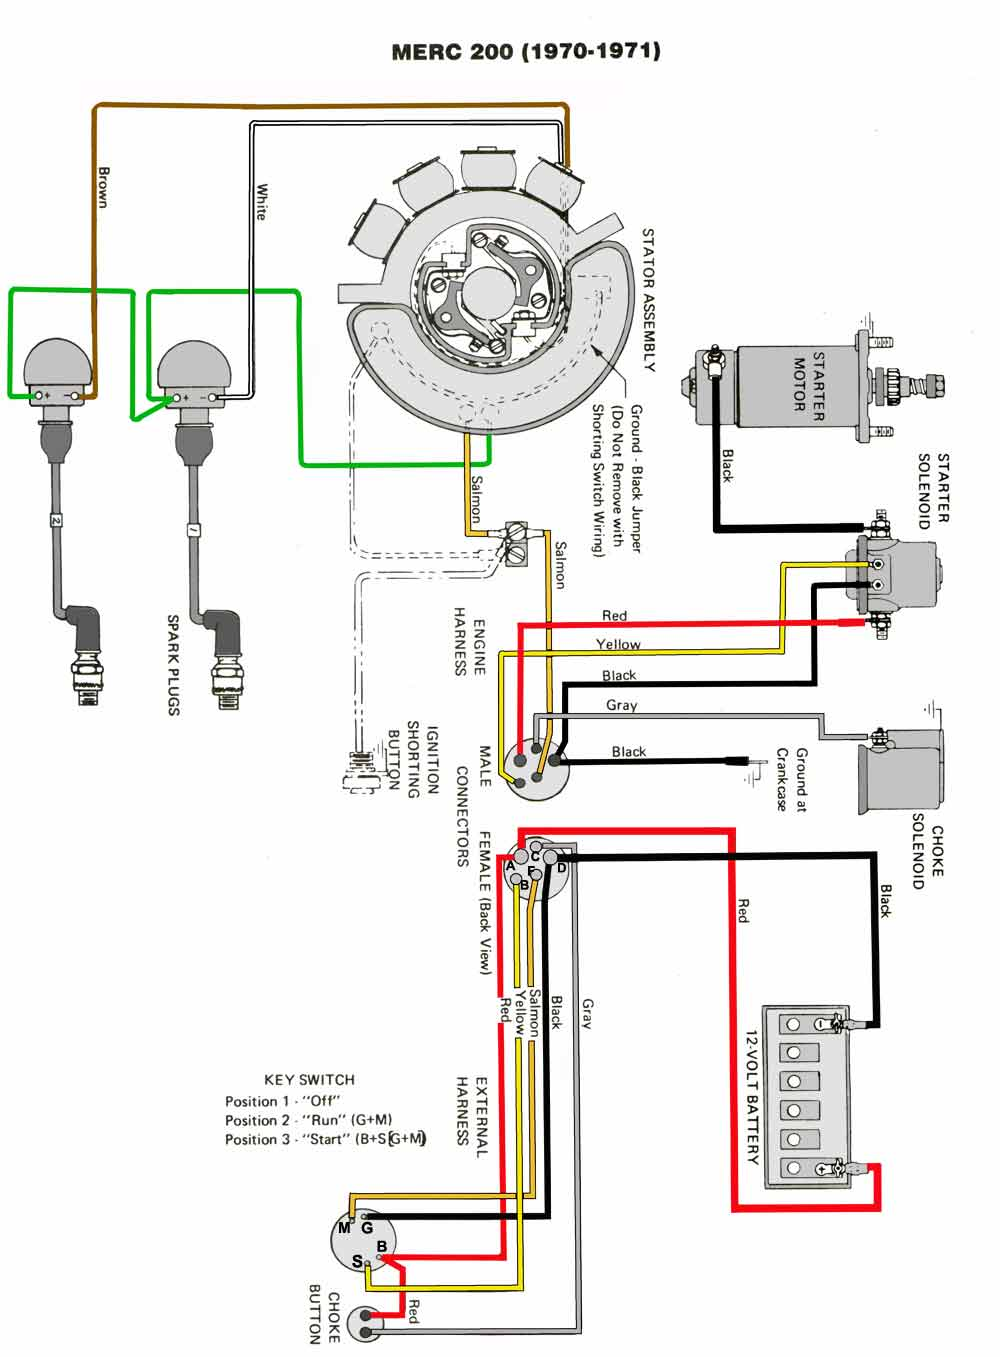 1966 mercury outboard wiring diagram 50 hp mercury outboard wiring diagram mercury outboard wiring diagrams -- mastertech marin